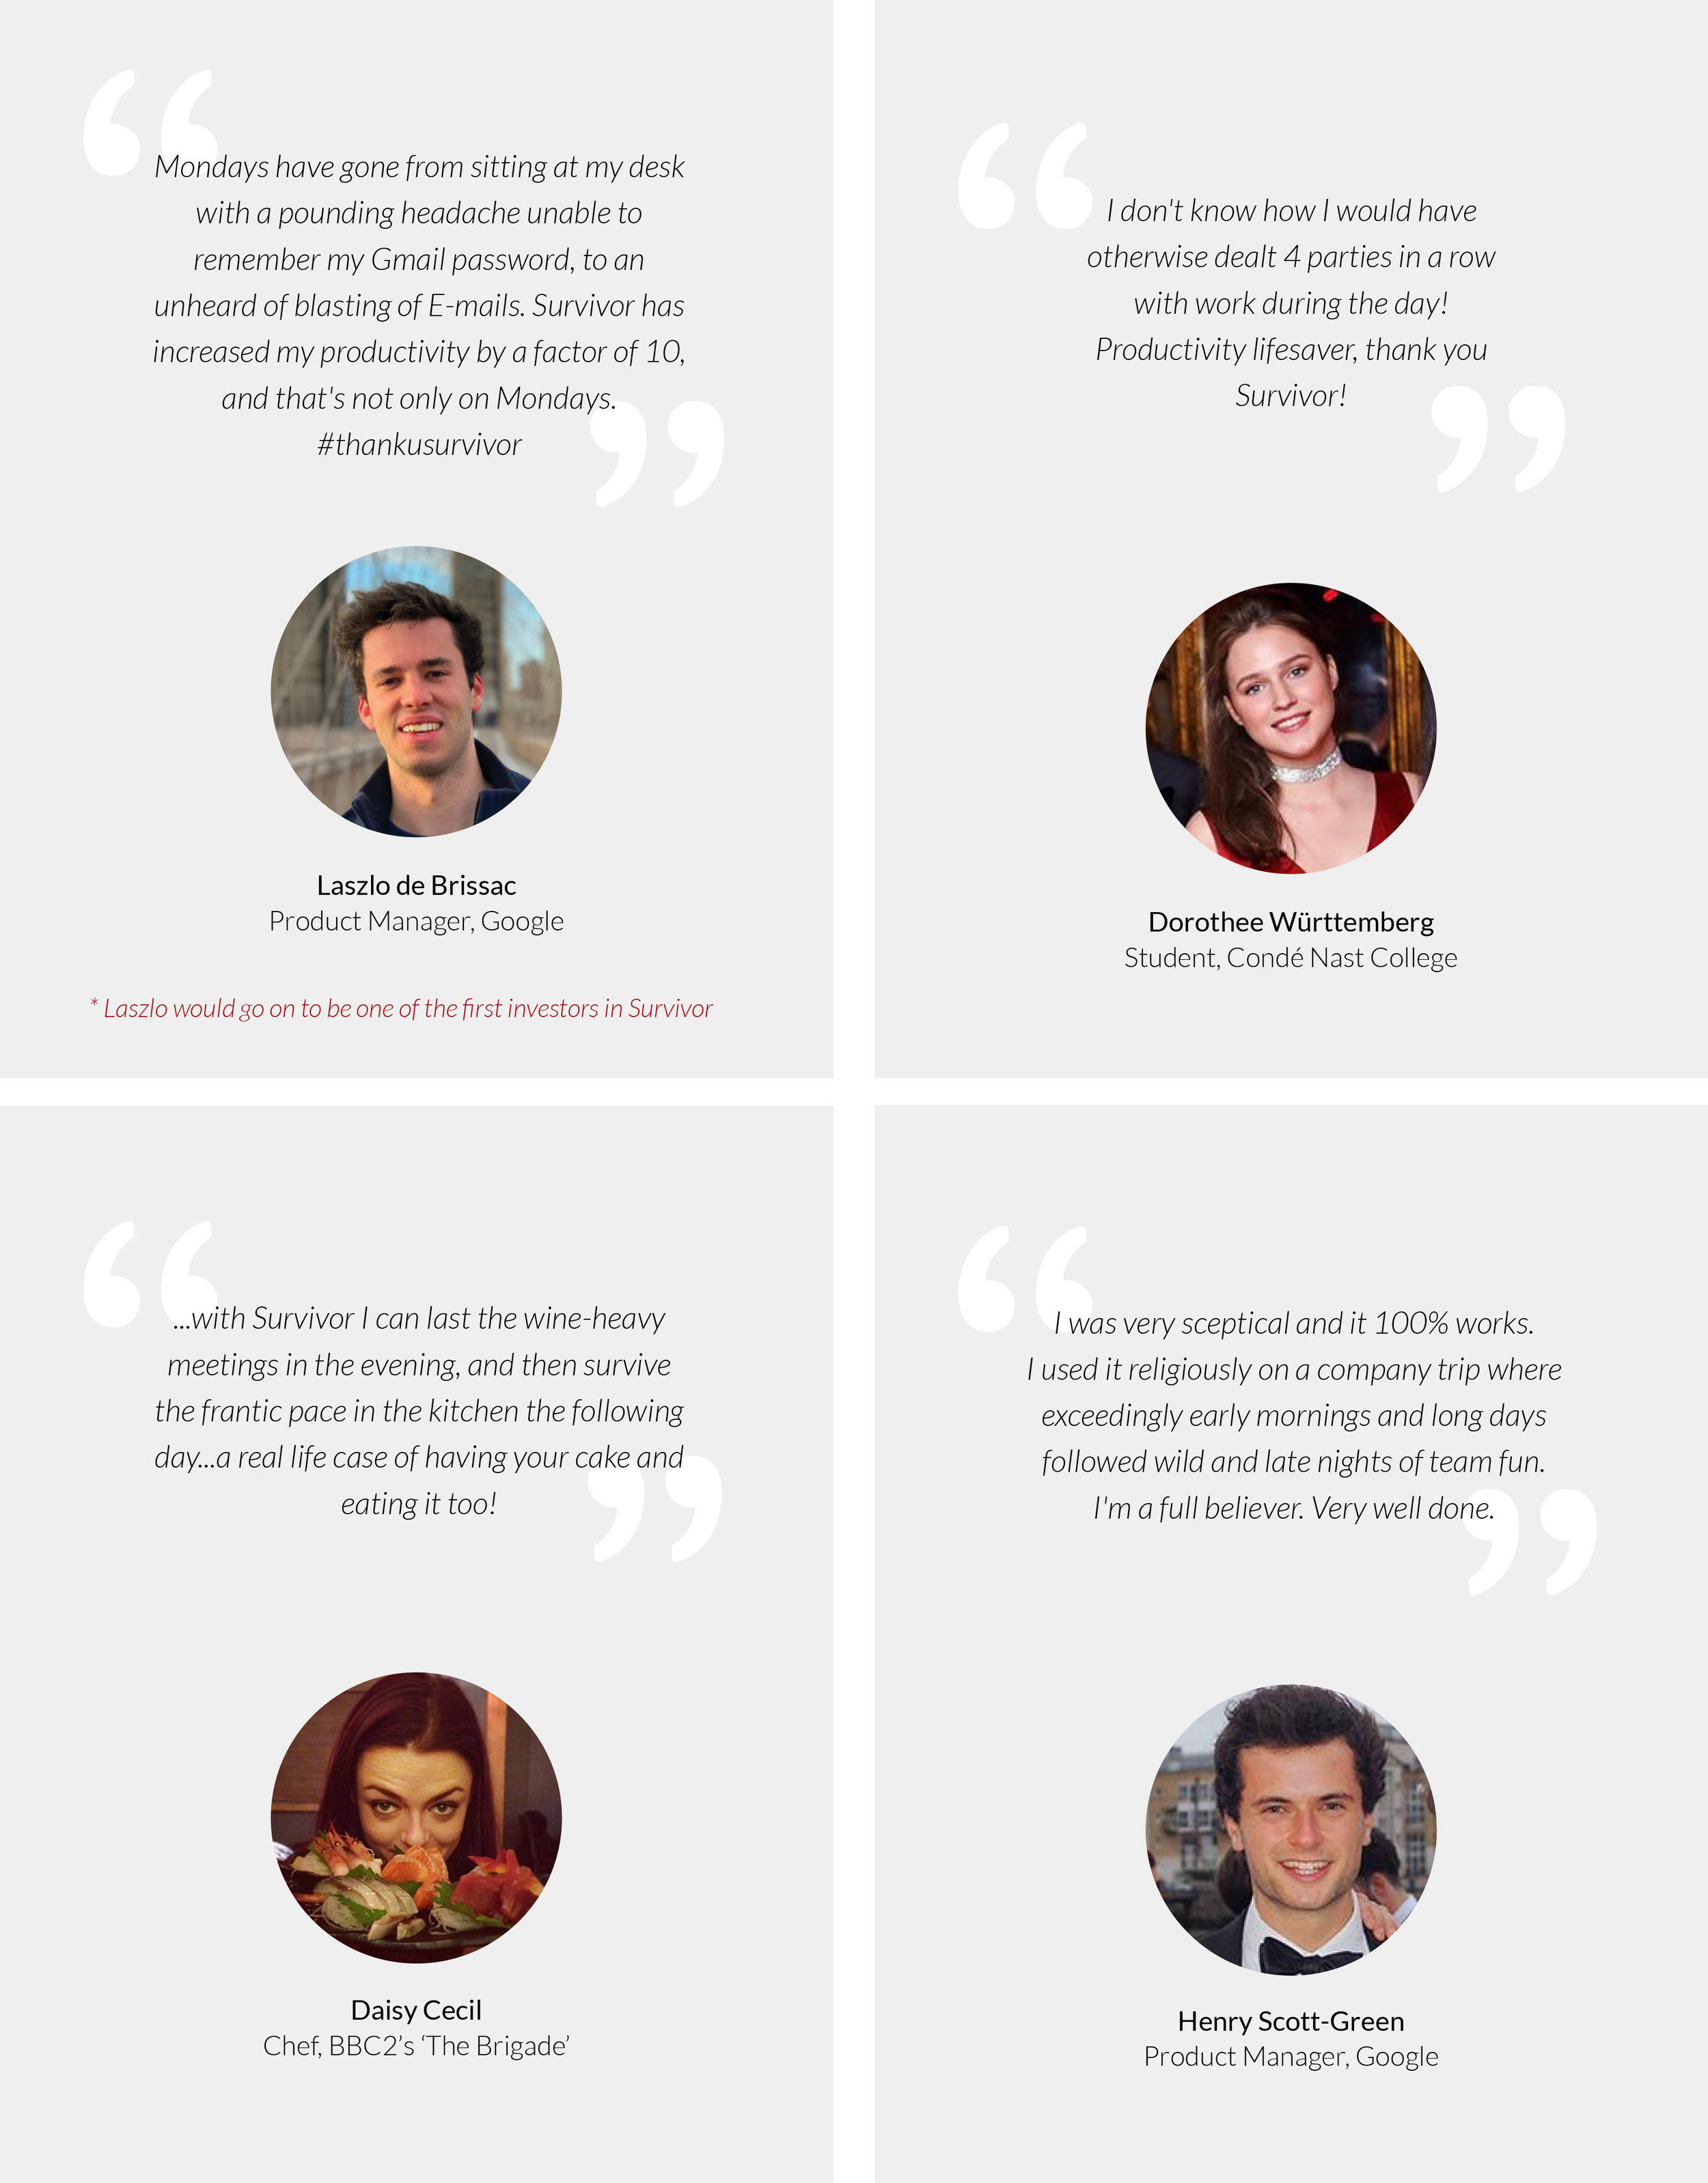 Some quotes and testimonials for the Indiegogo campaign page.